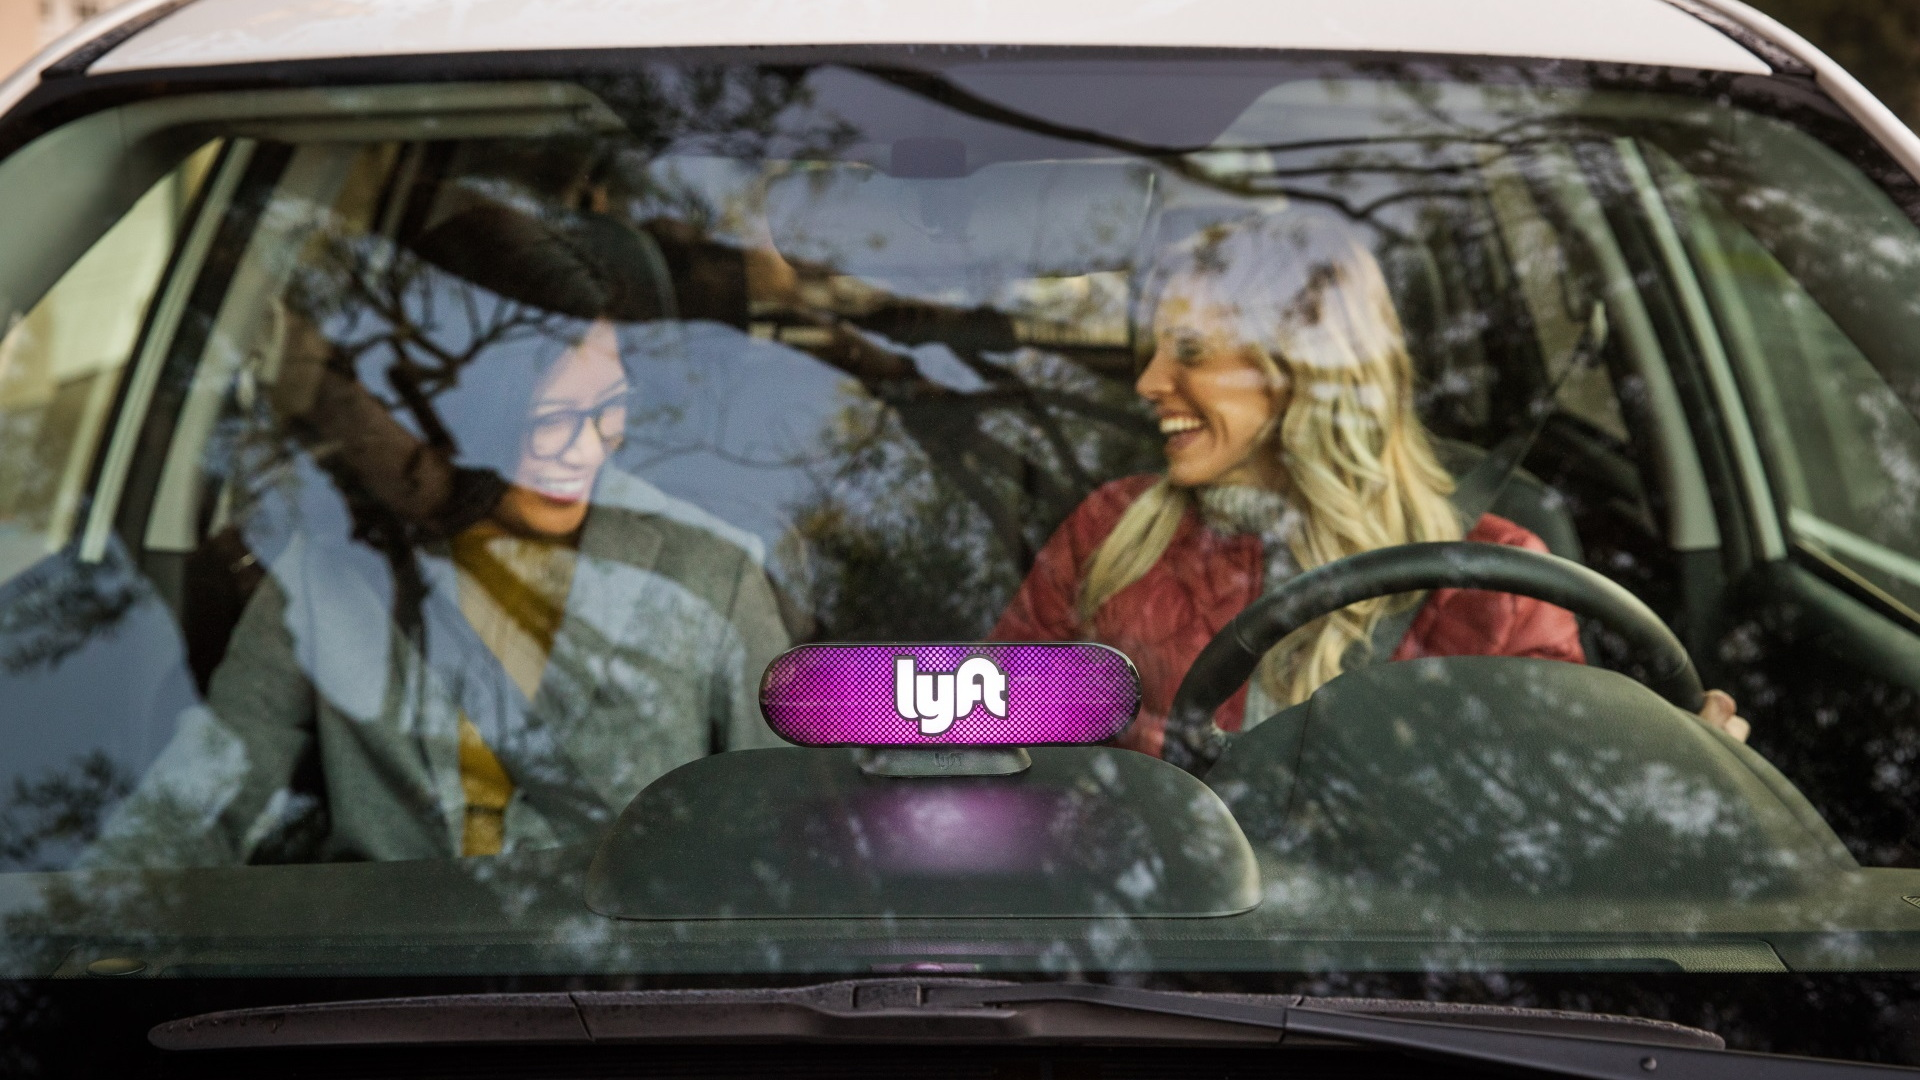 Lyft car picking up a rider